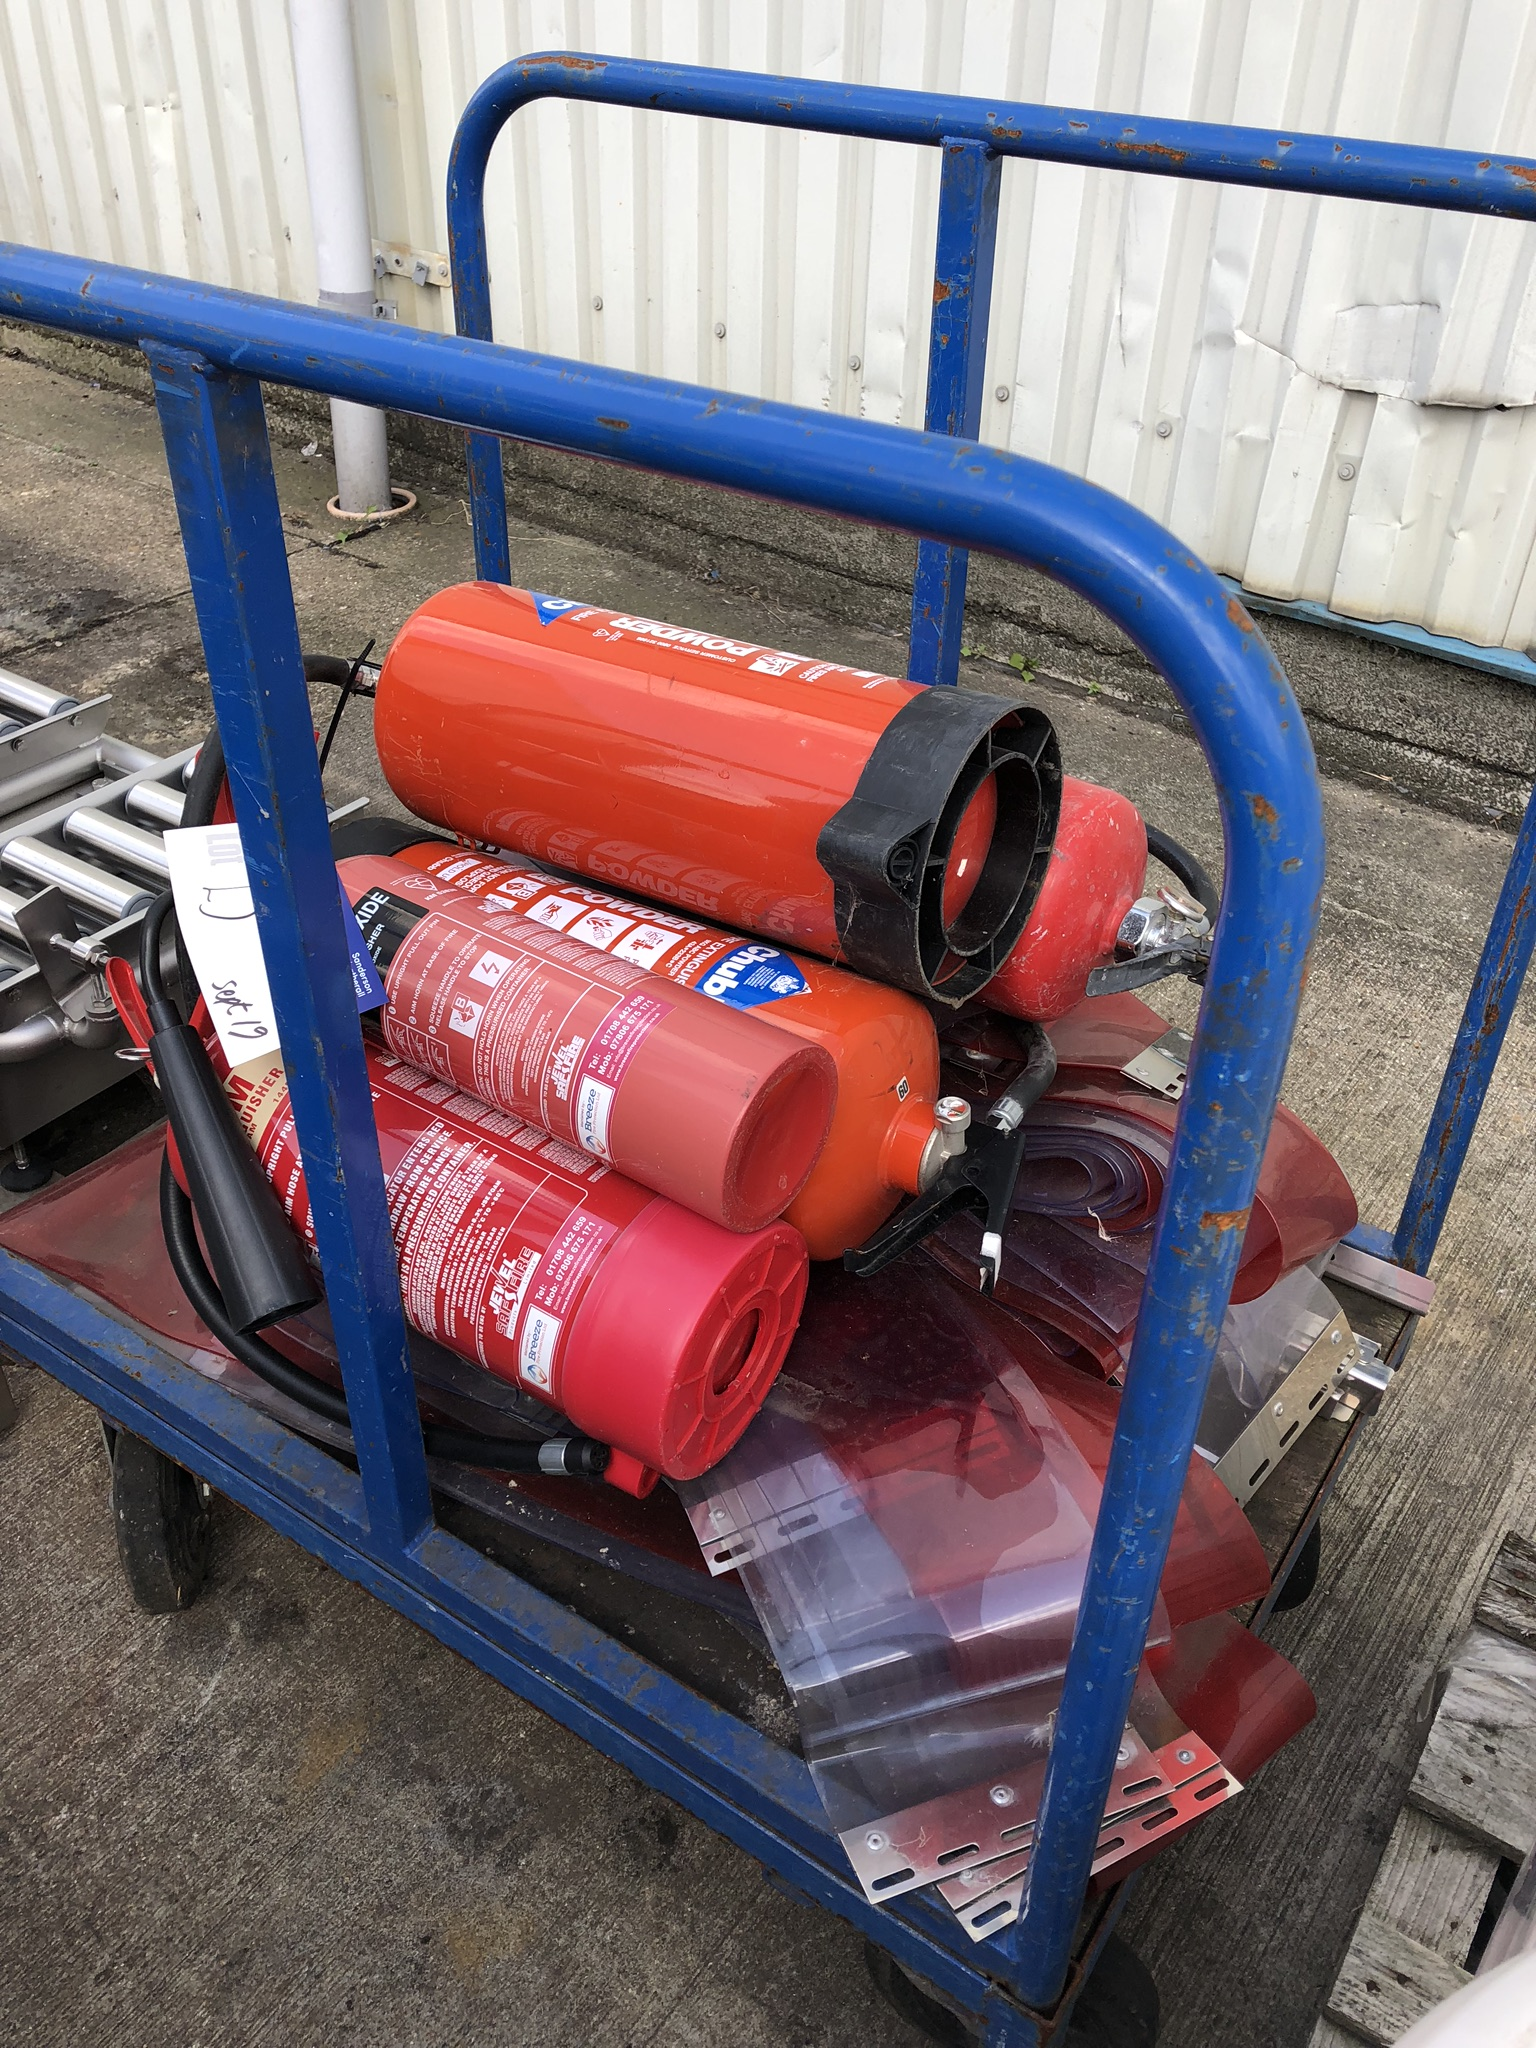 Trolley, with five fire extinguishers and plastic curtain, lift out charge - £20 - Image 2 of 2